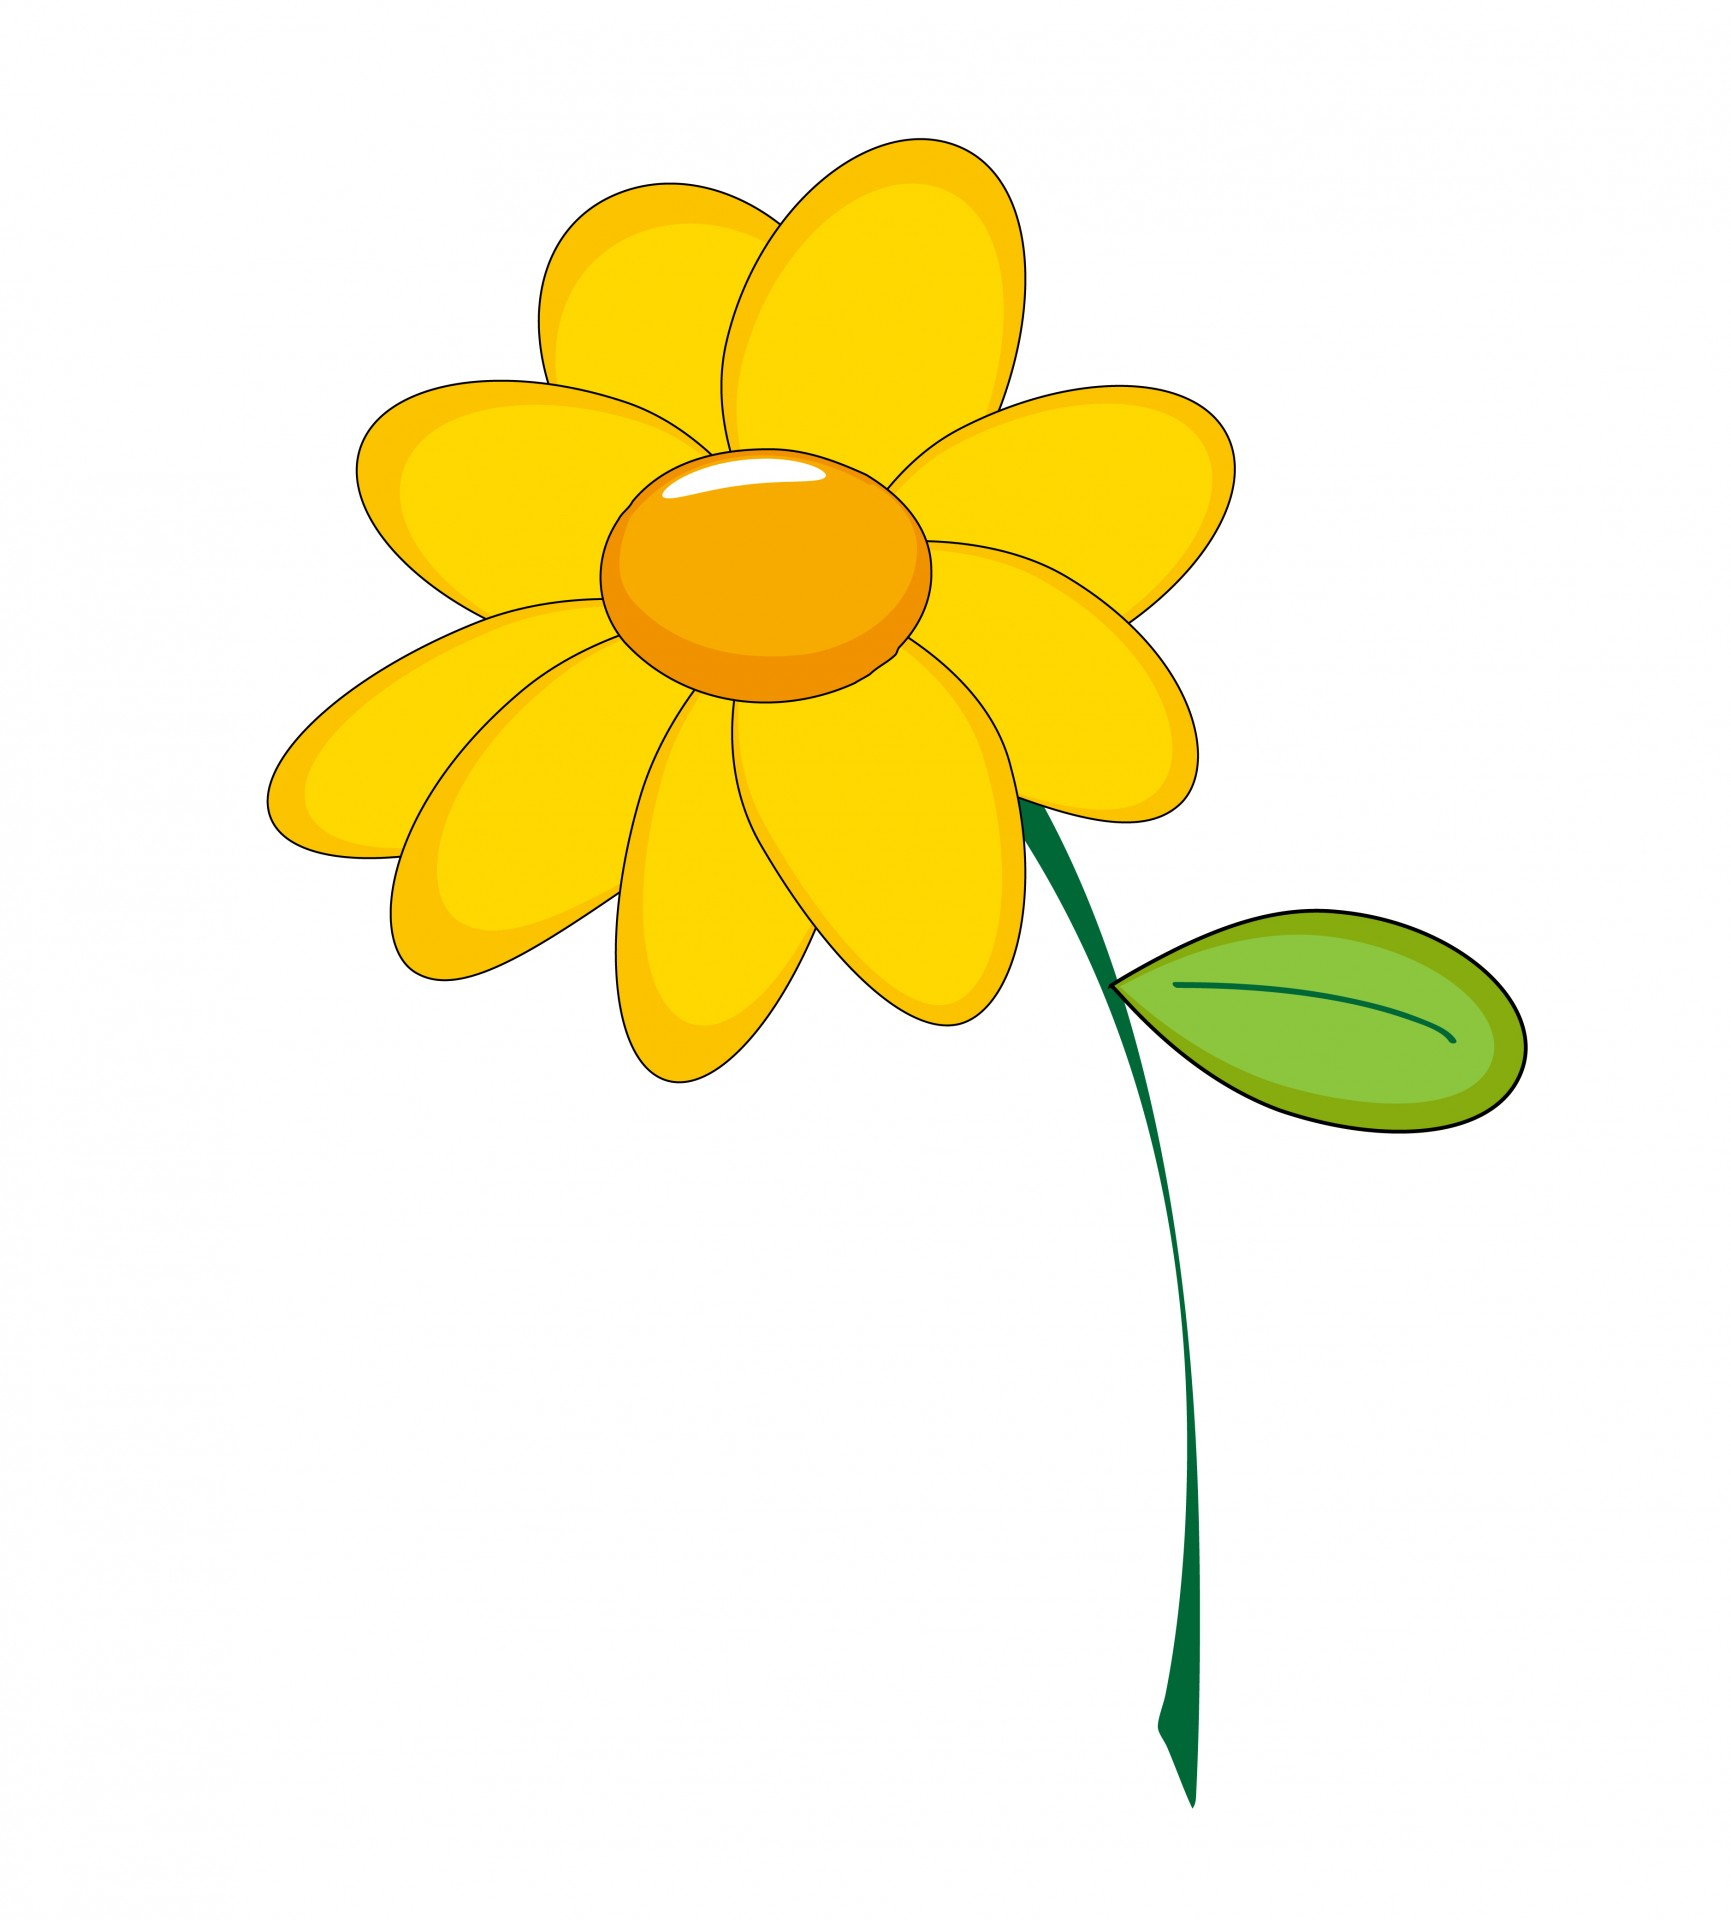 Yellow Flower Clipart Free Stock Photo.